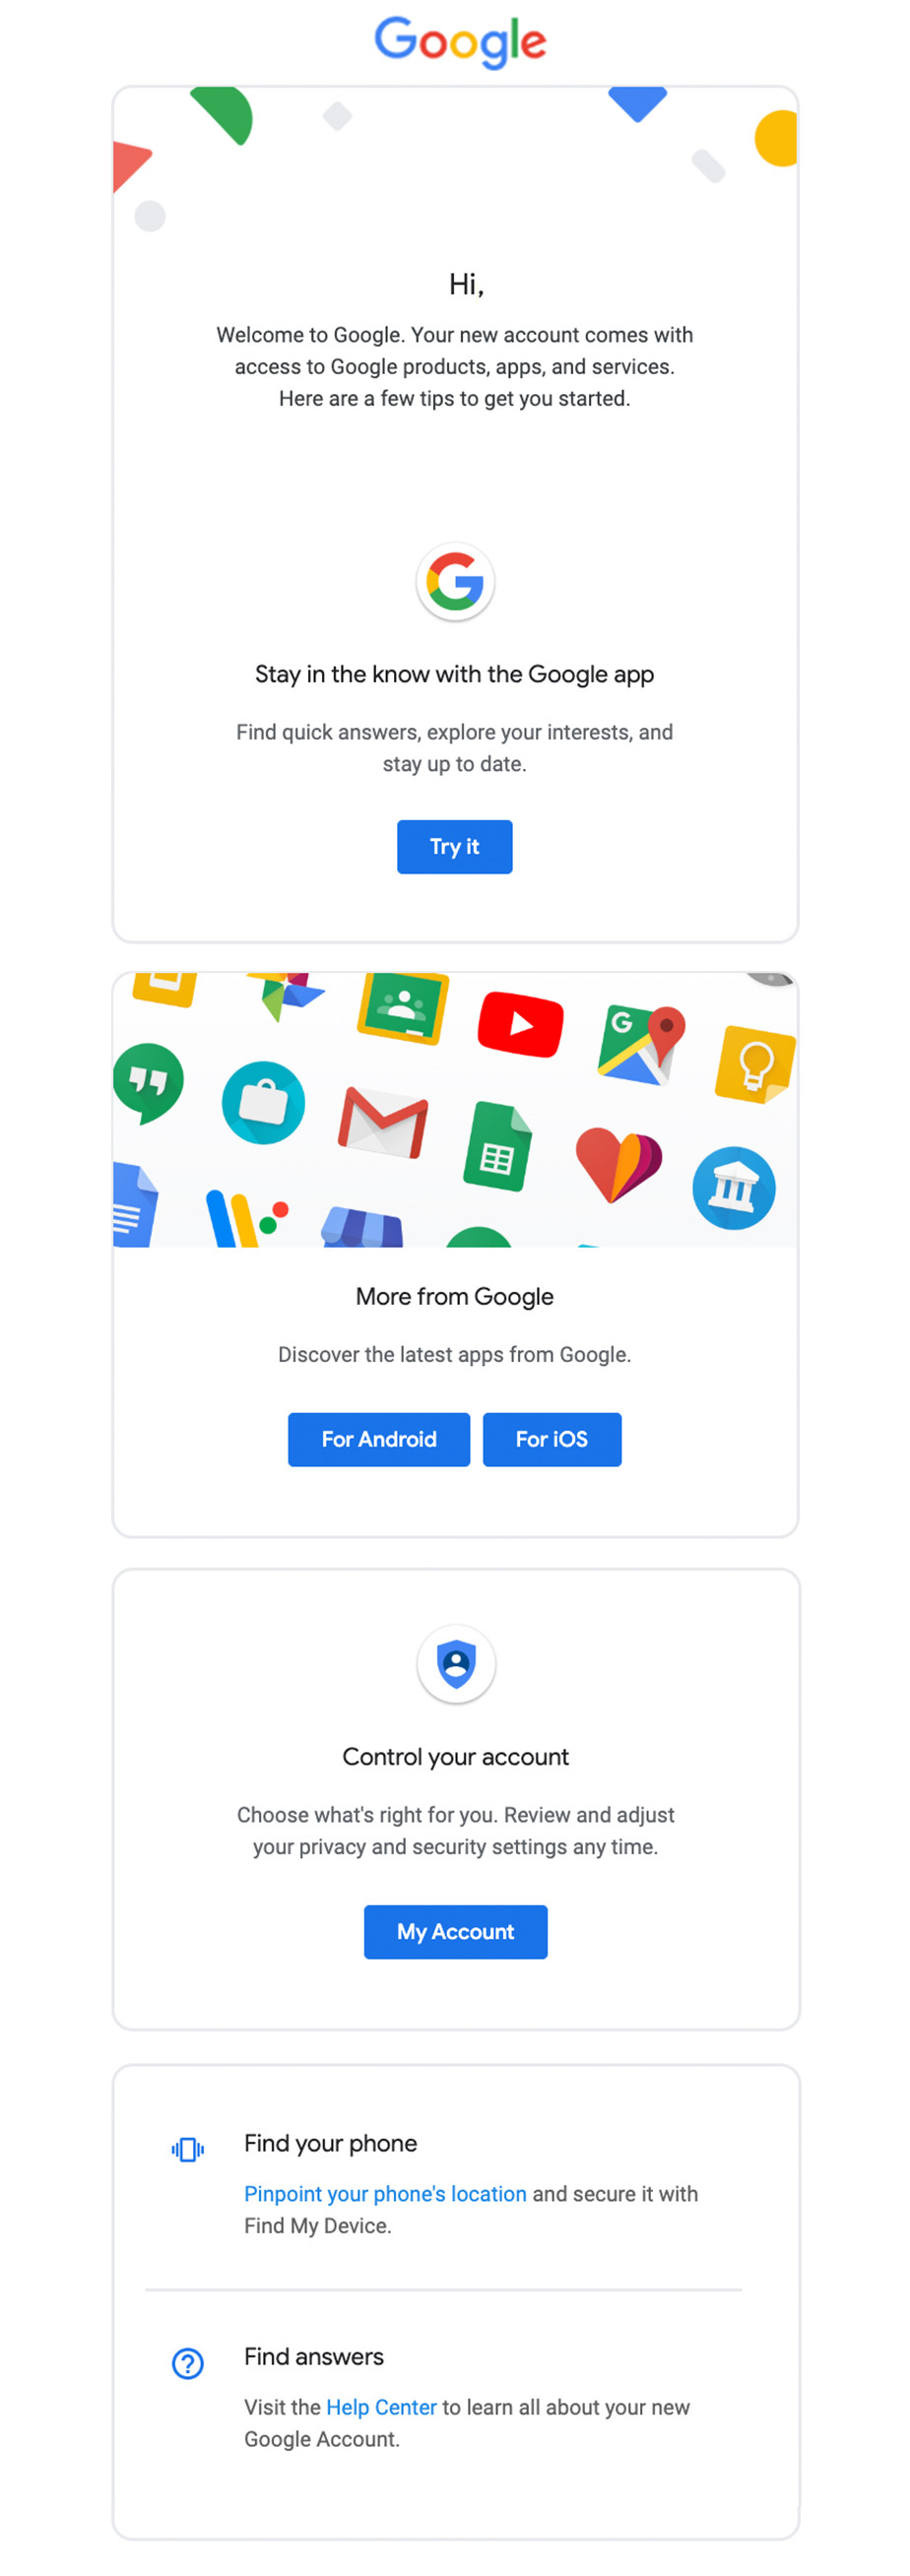 Welcome email by Google